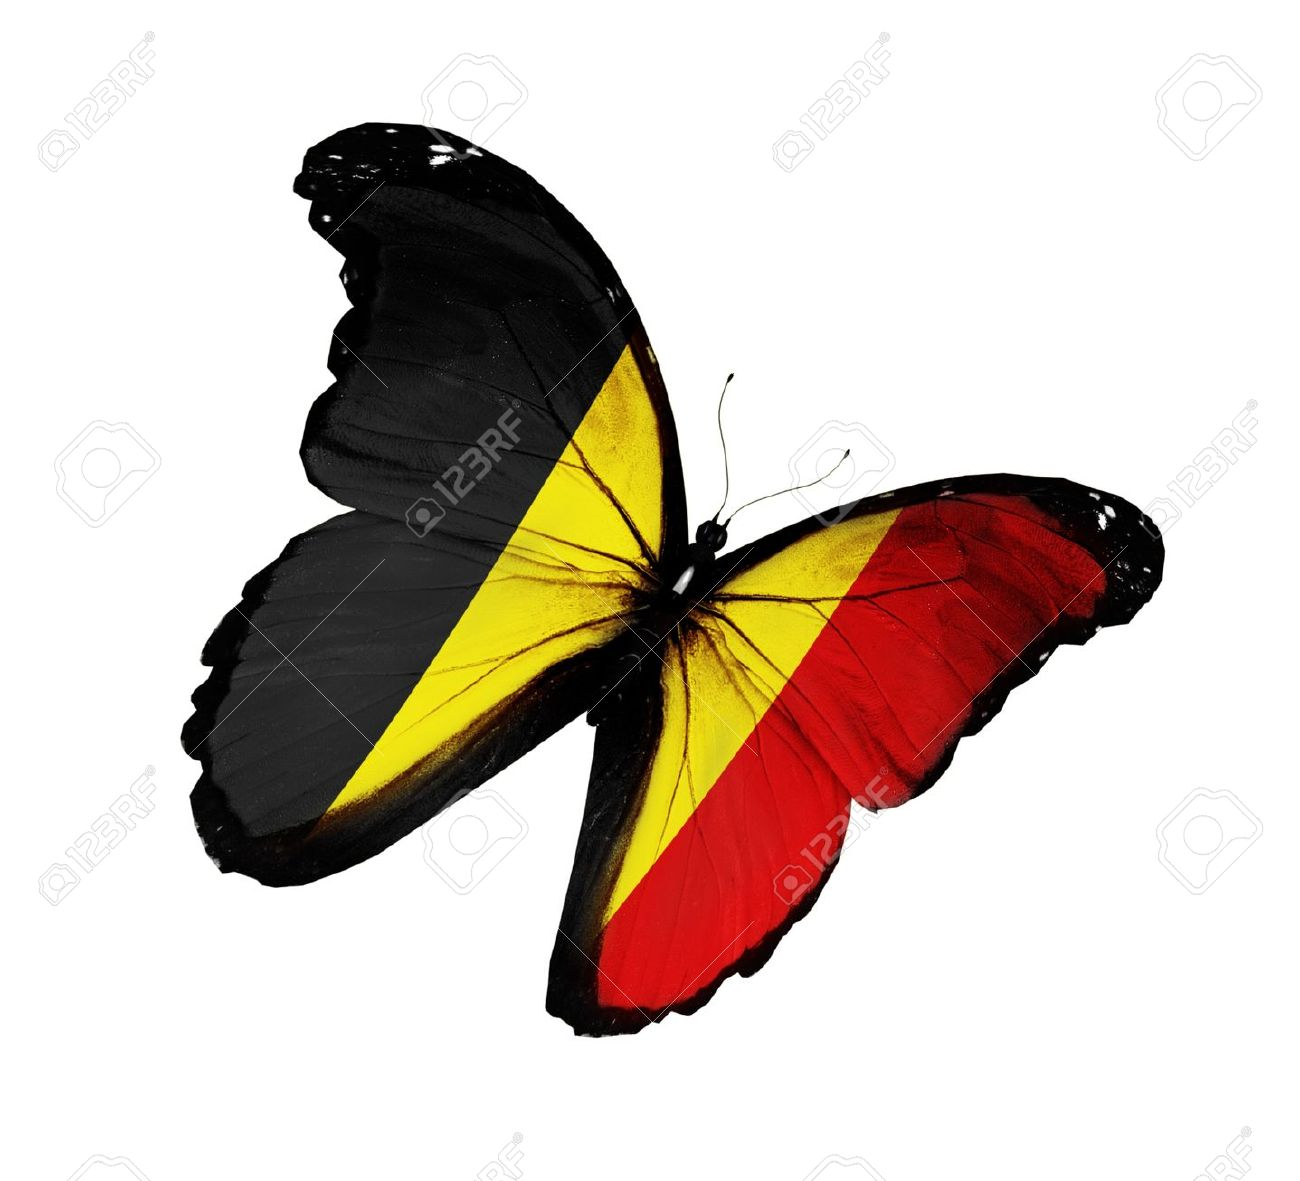 PM´s Prediction Game Season VII | year 2015 - Page 2 14576346-belgian-flag-butterfly-flying-isolated-on-white-background